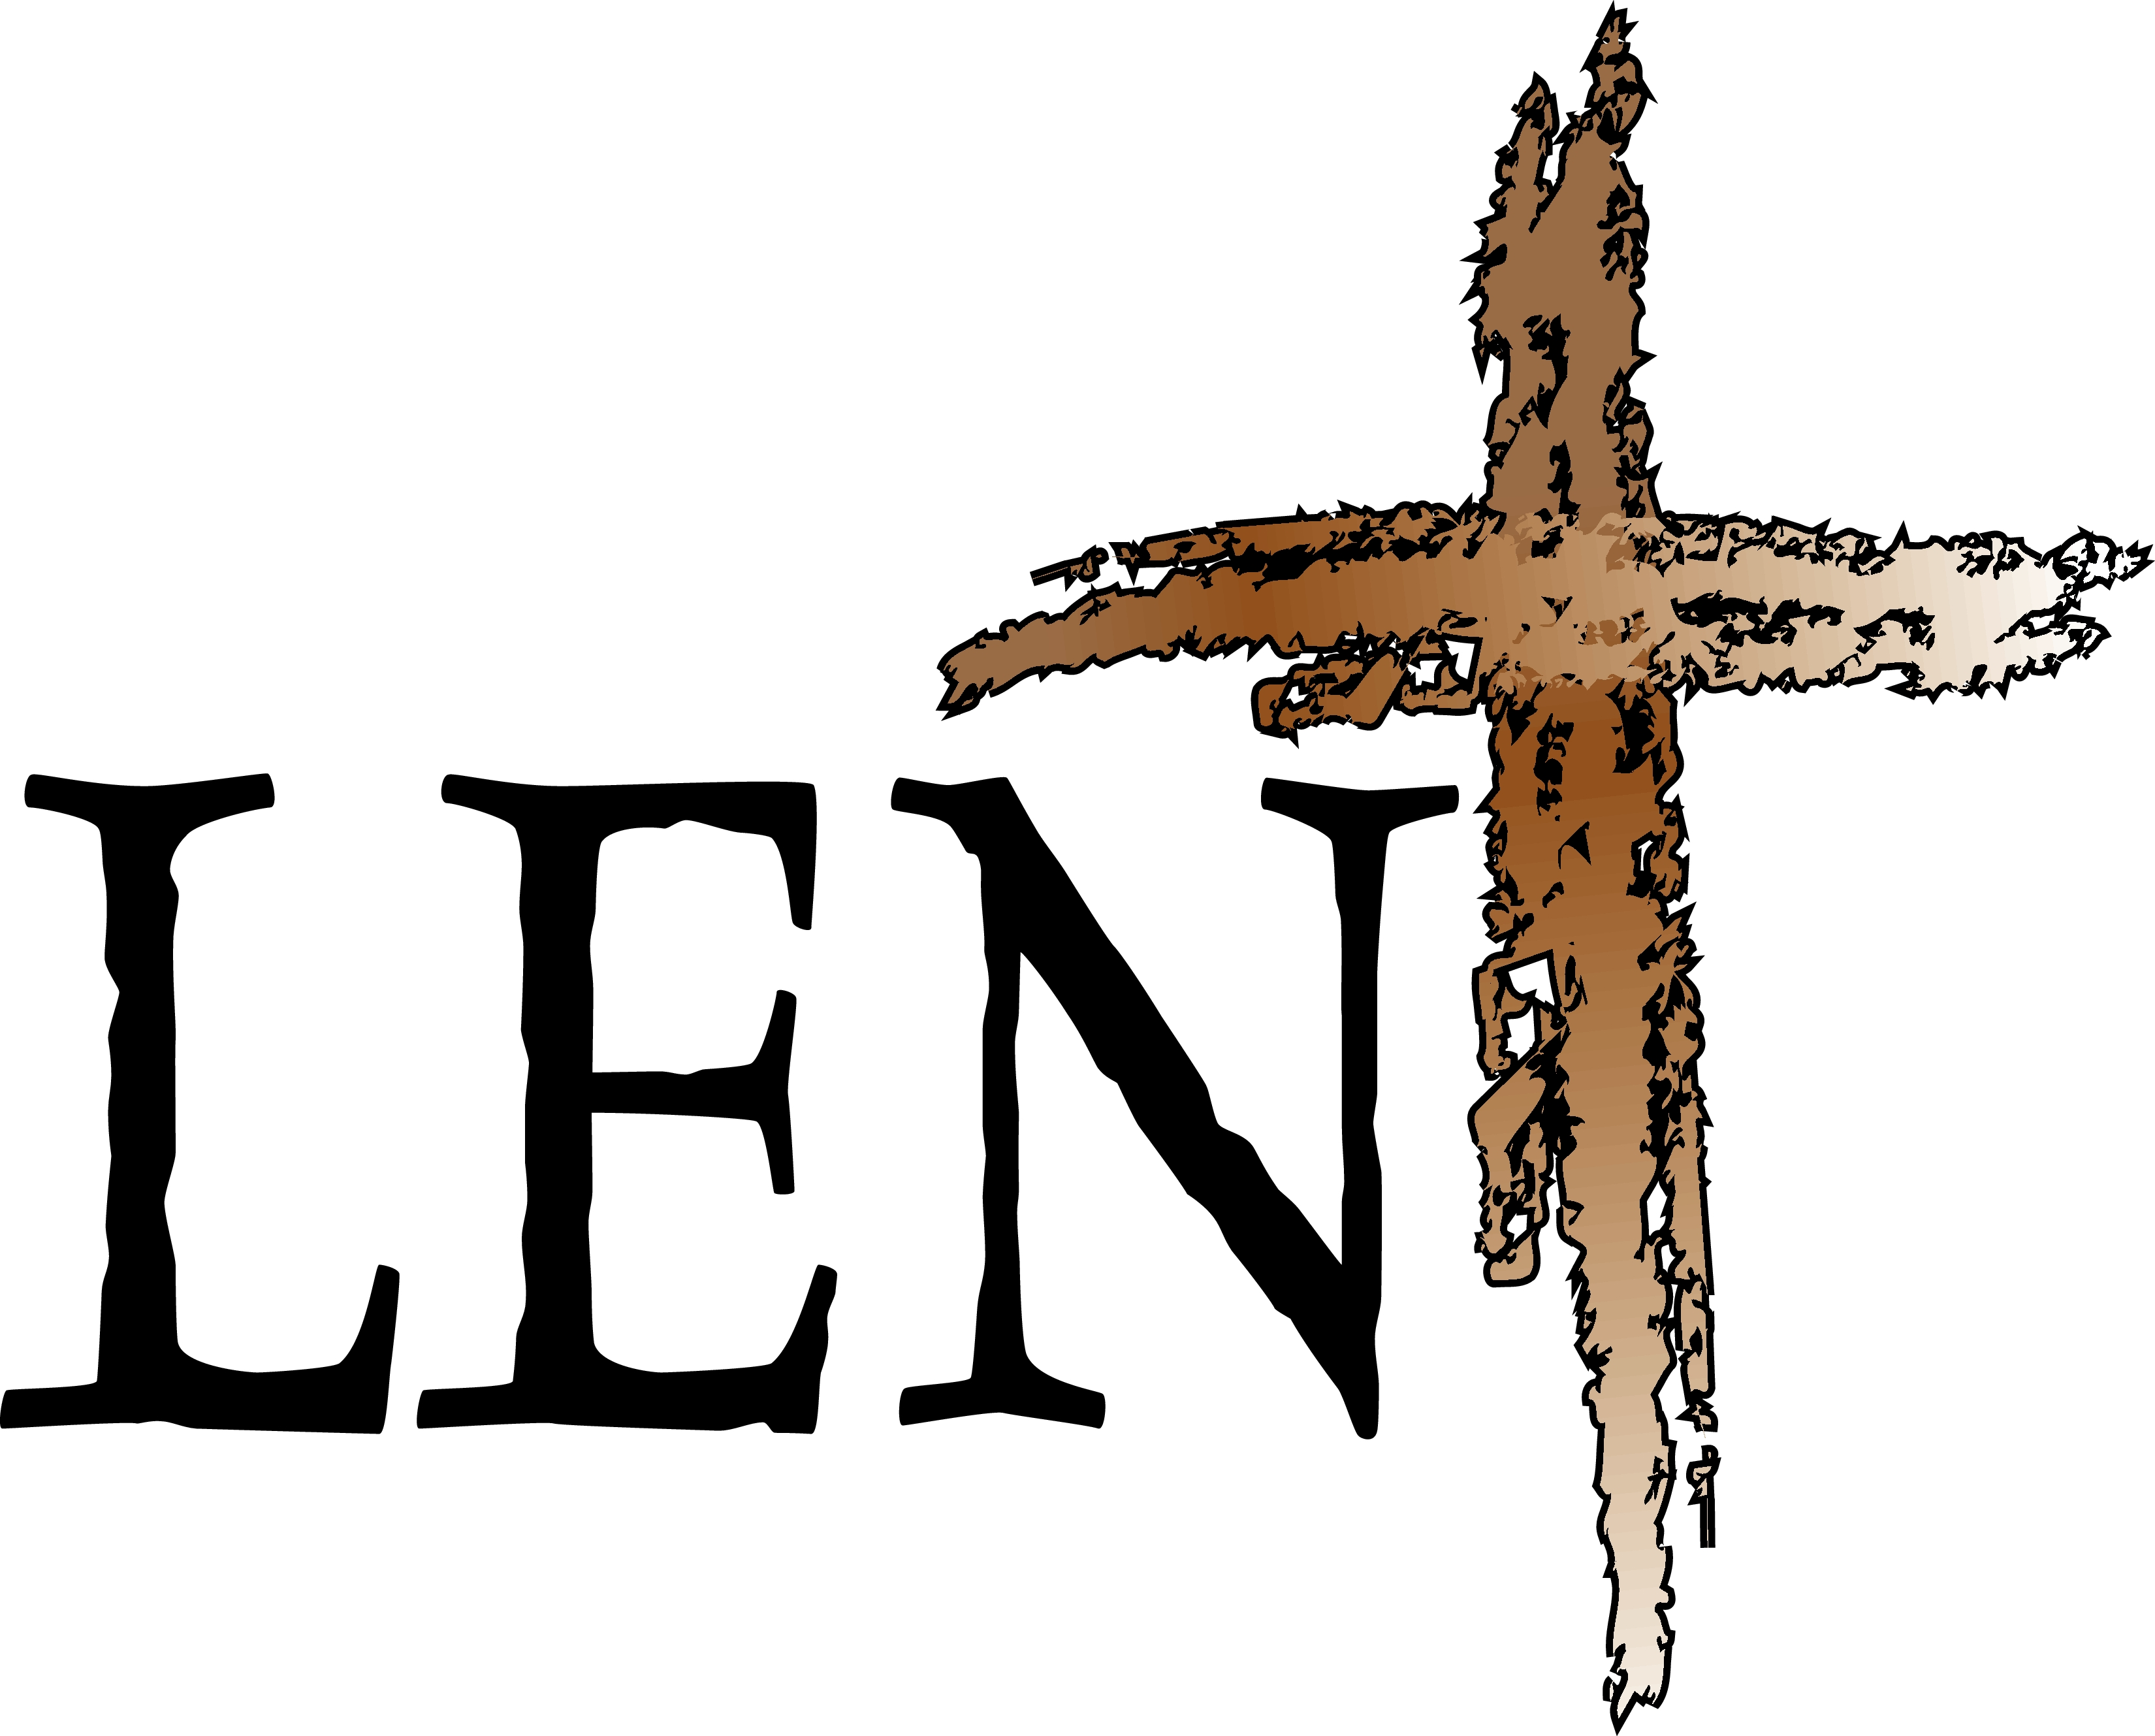 Meaning of Great Lent - by Bishop Serapion